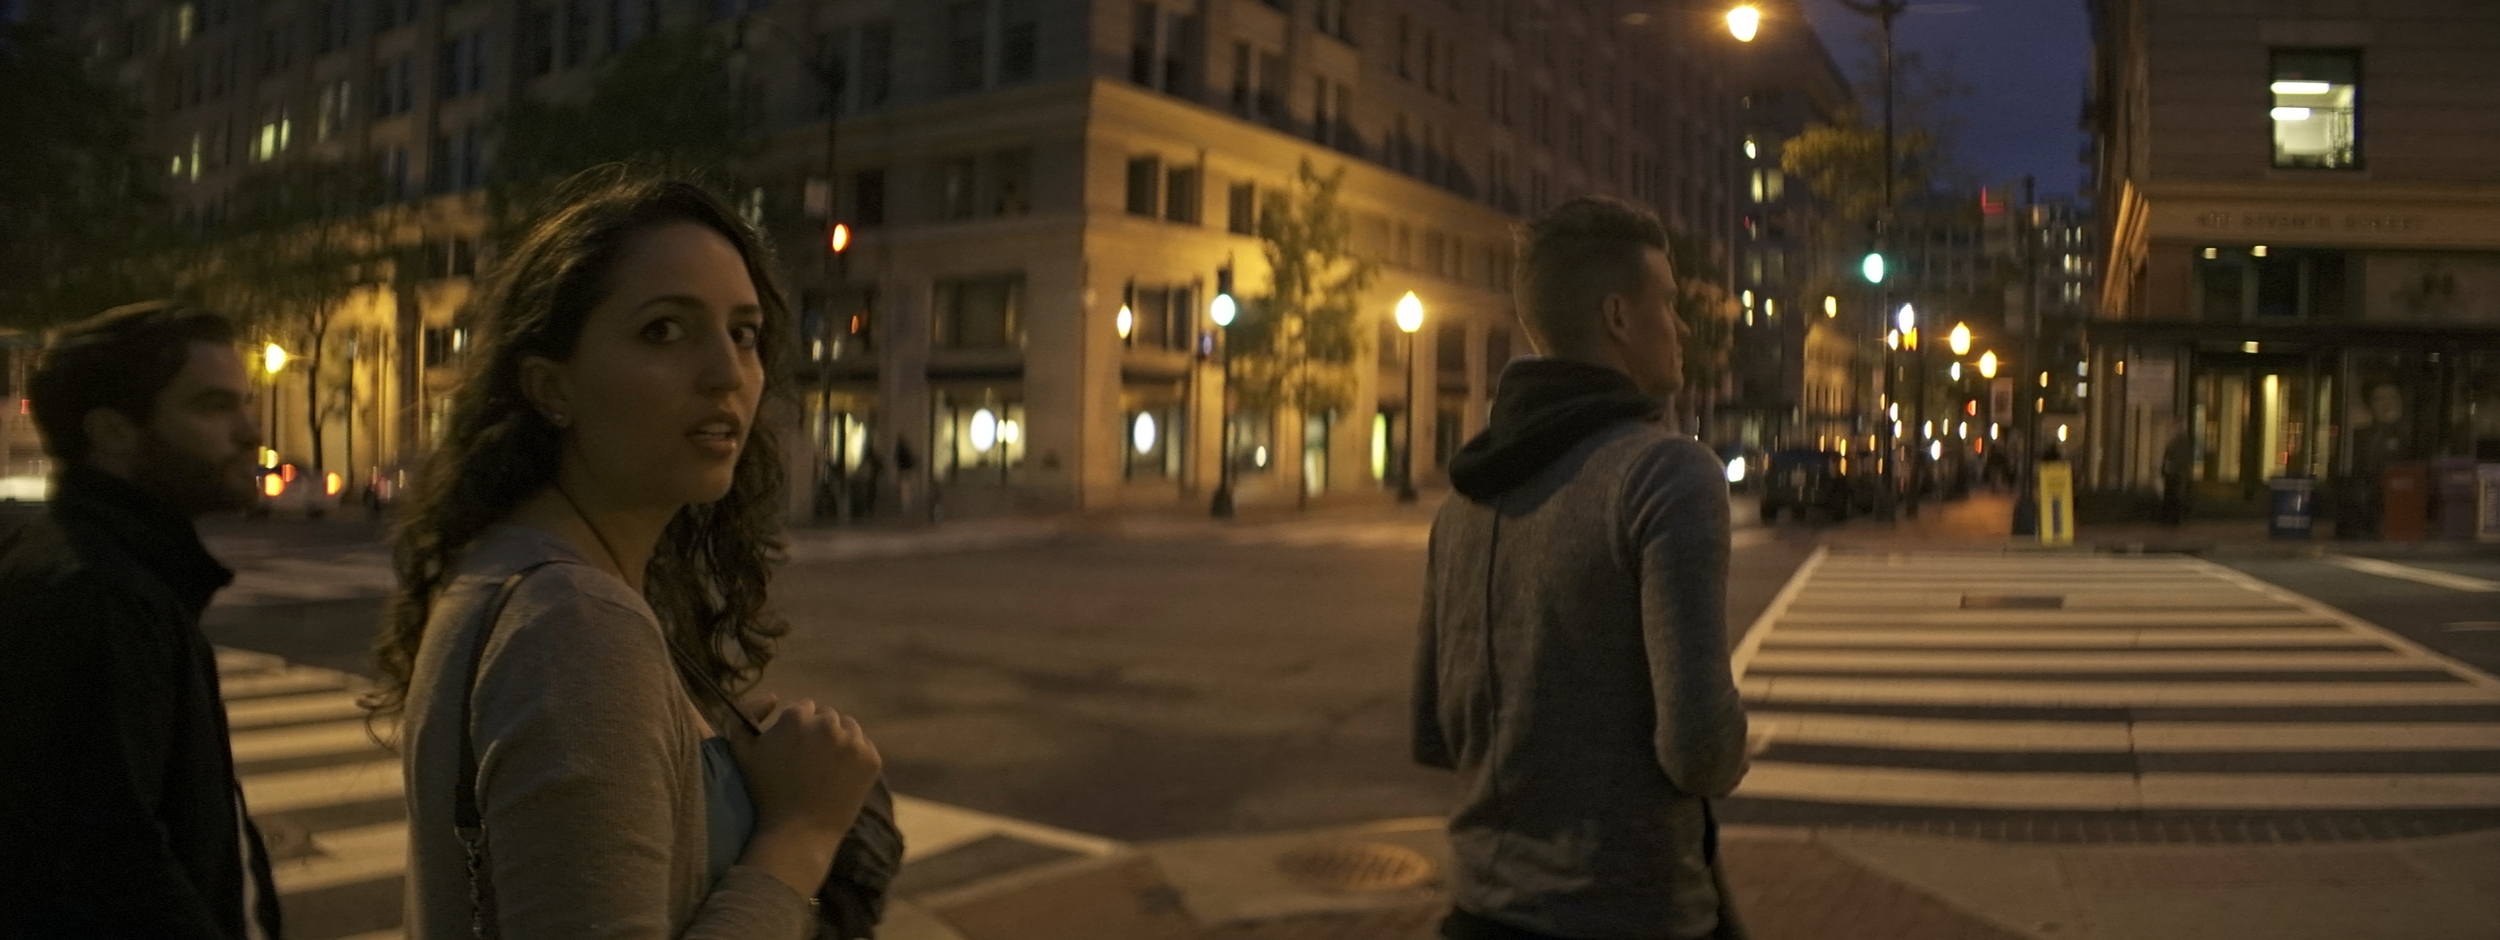 Elite 24.5mm anamorphic | Washington D.C. - A close-focus perspective on a street corner in Washington D.C. T2.1. Photo by Keith Nickoson.